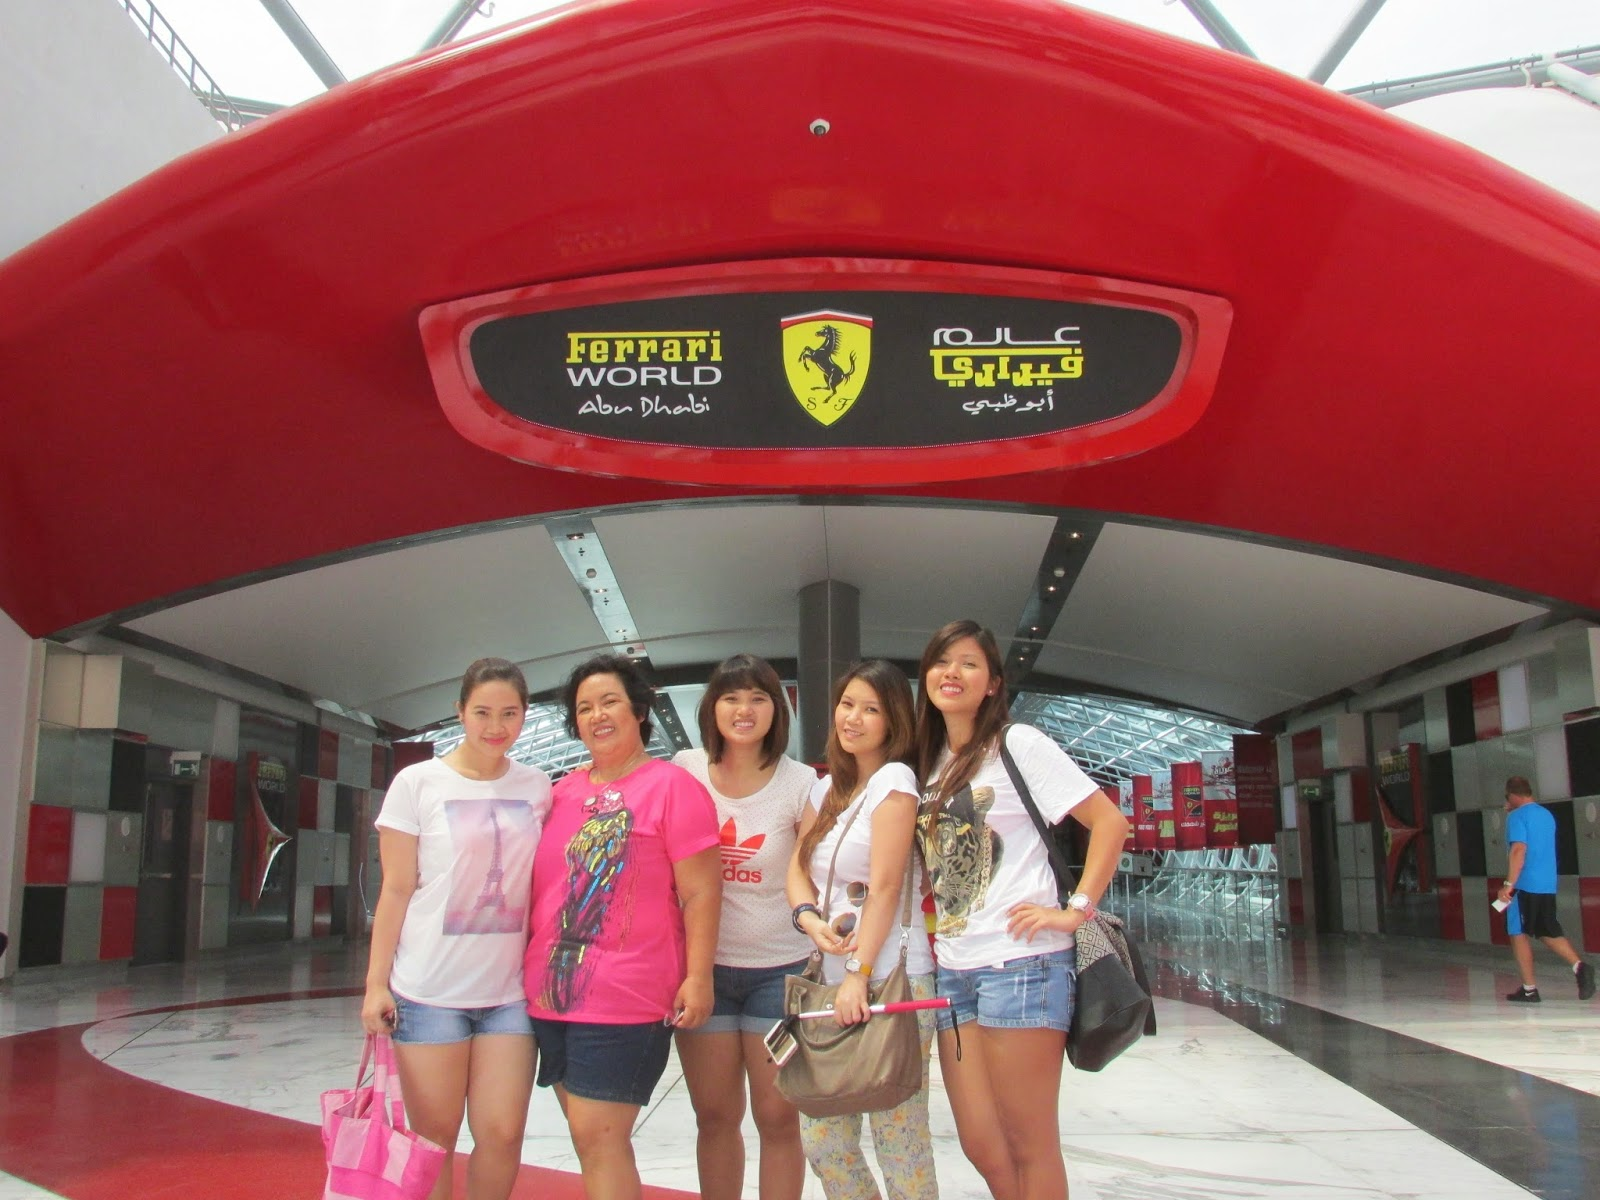 You will be amazed with all the actual ferrari cars displayed especially if you are a car enthusiast